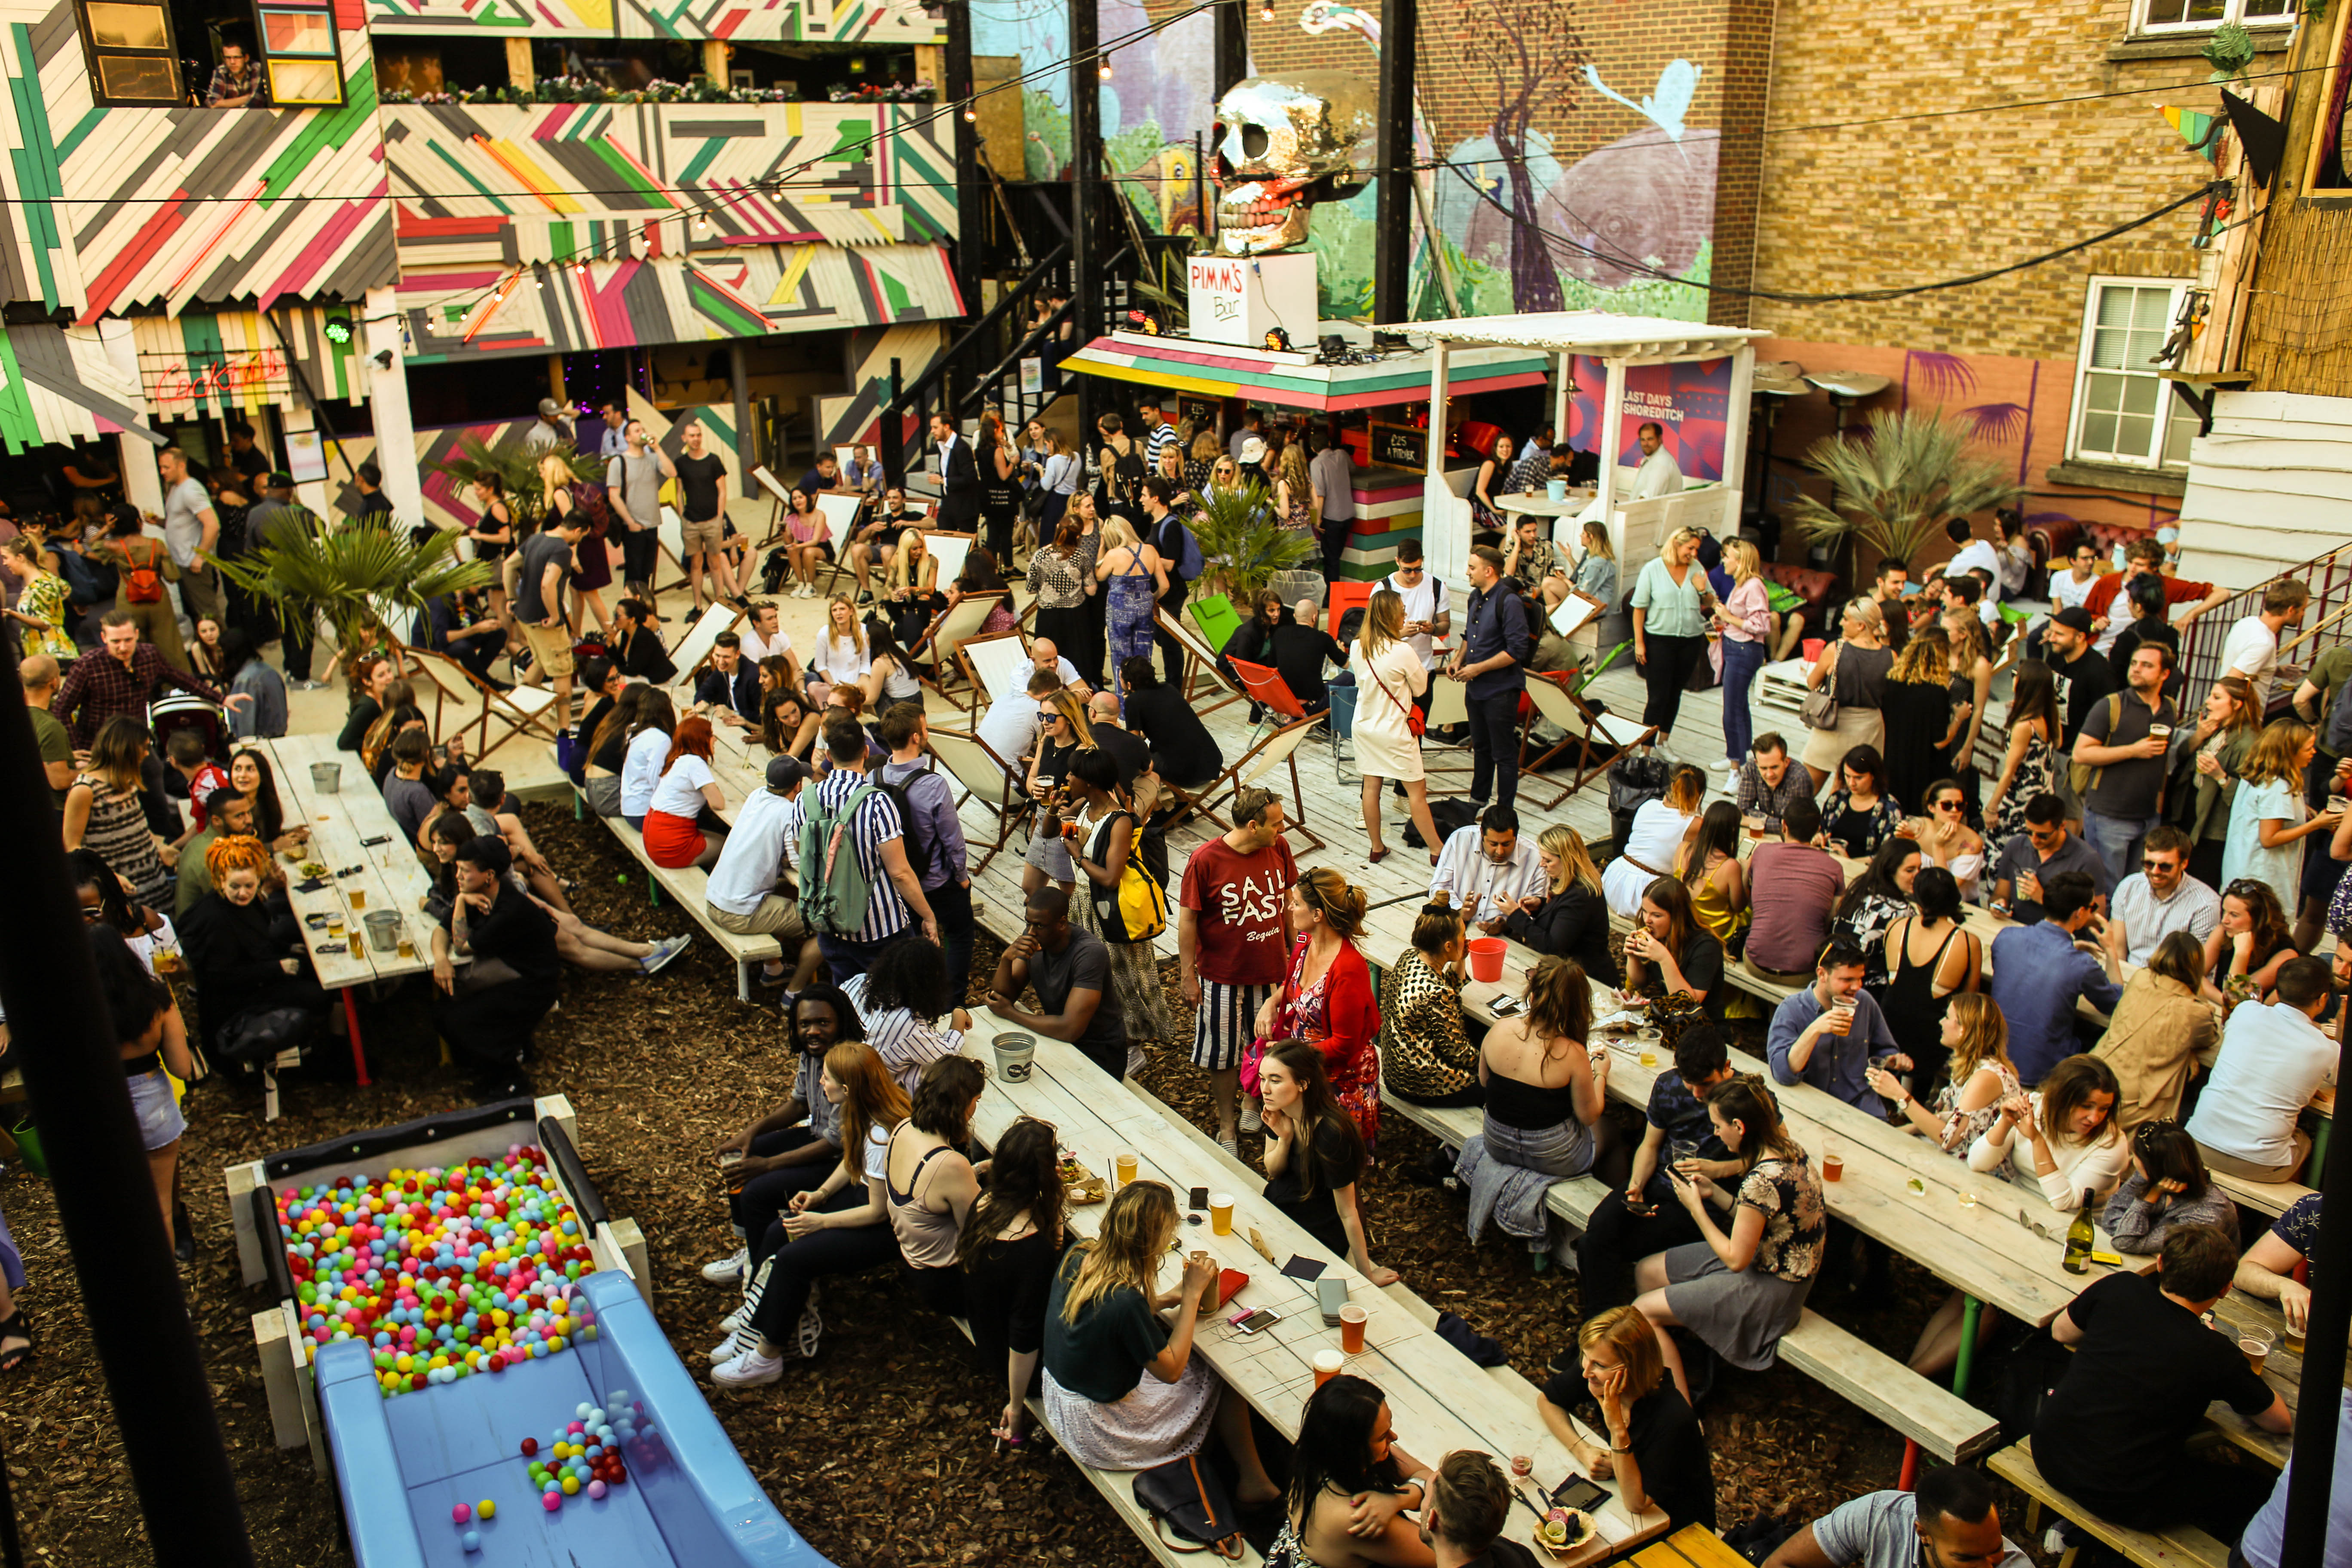 An English Oktoberfest will take place in the Last Days of Shoreditch. Image: Shoreditch Oktoberfest